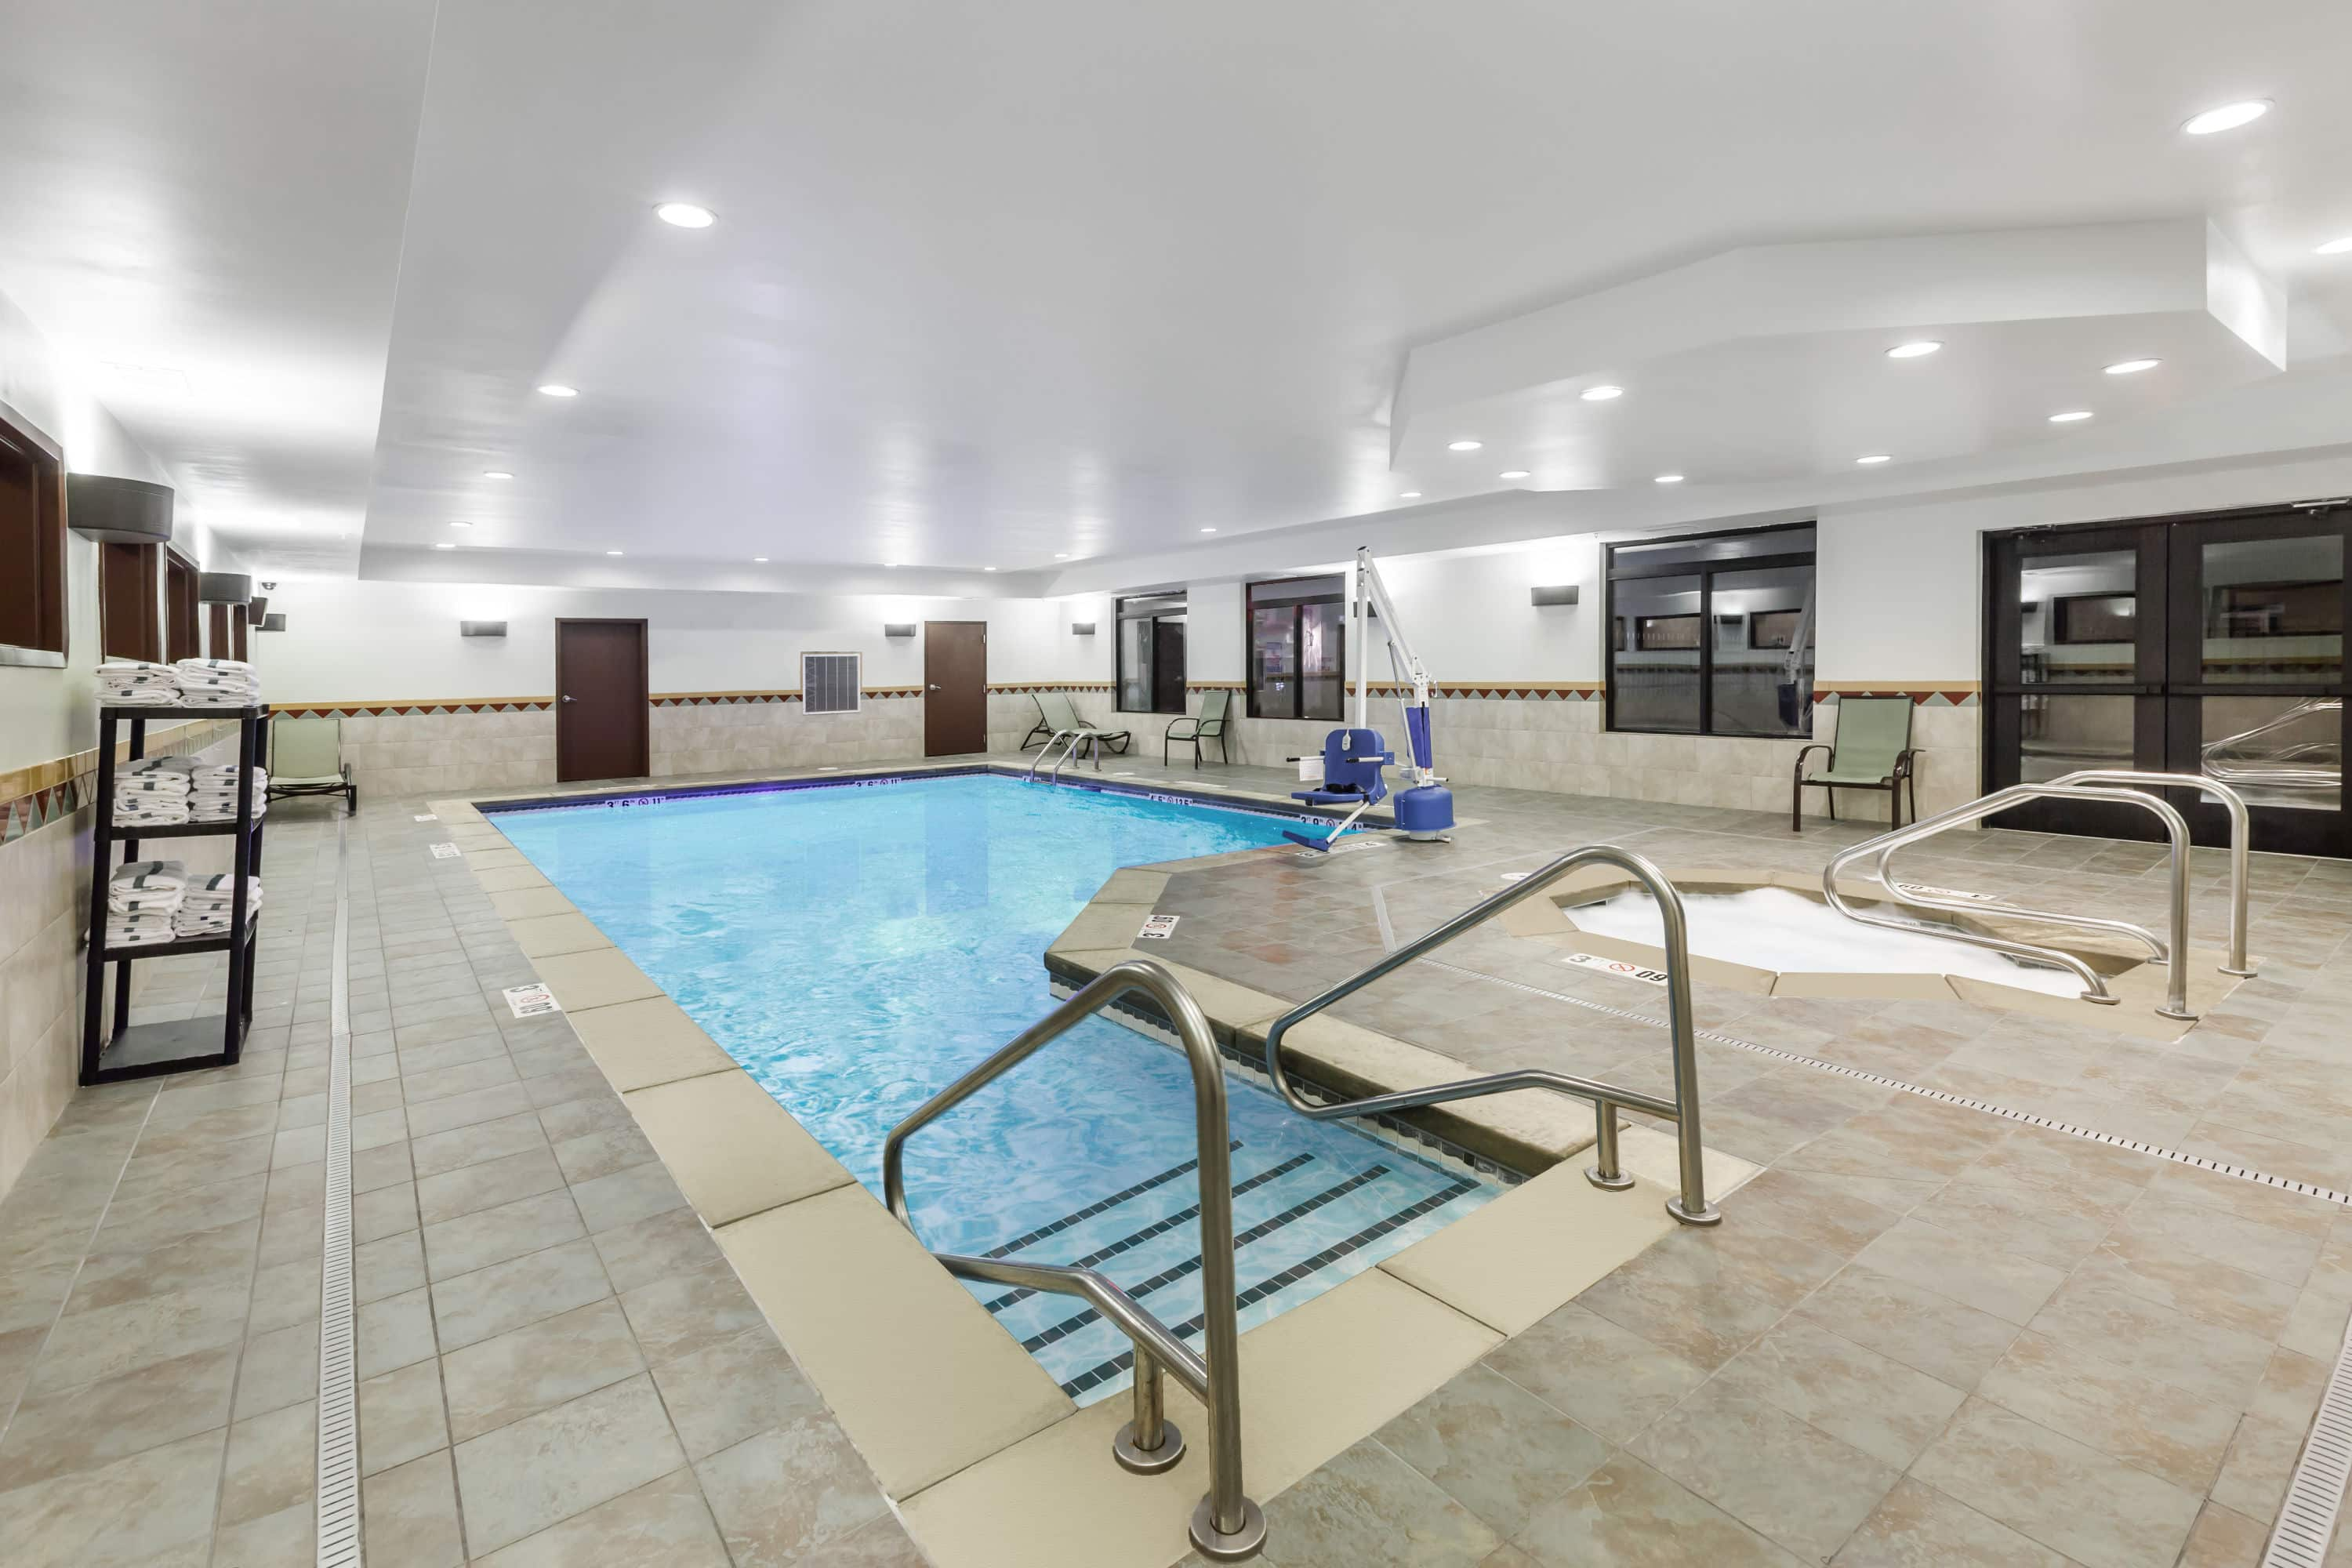 Gallery Of Pool At The Wingate By Wyndham Tulsa In Oklahoma With Hotels Near Business Center Ok